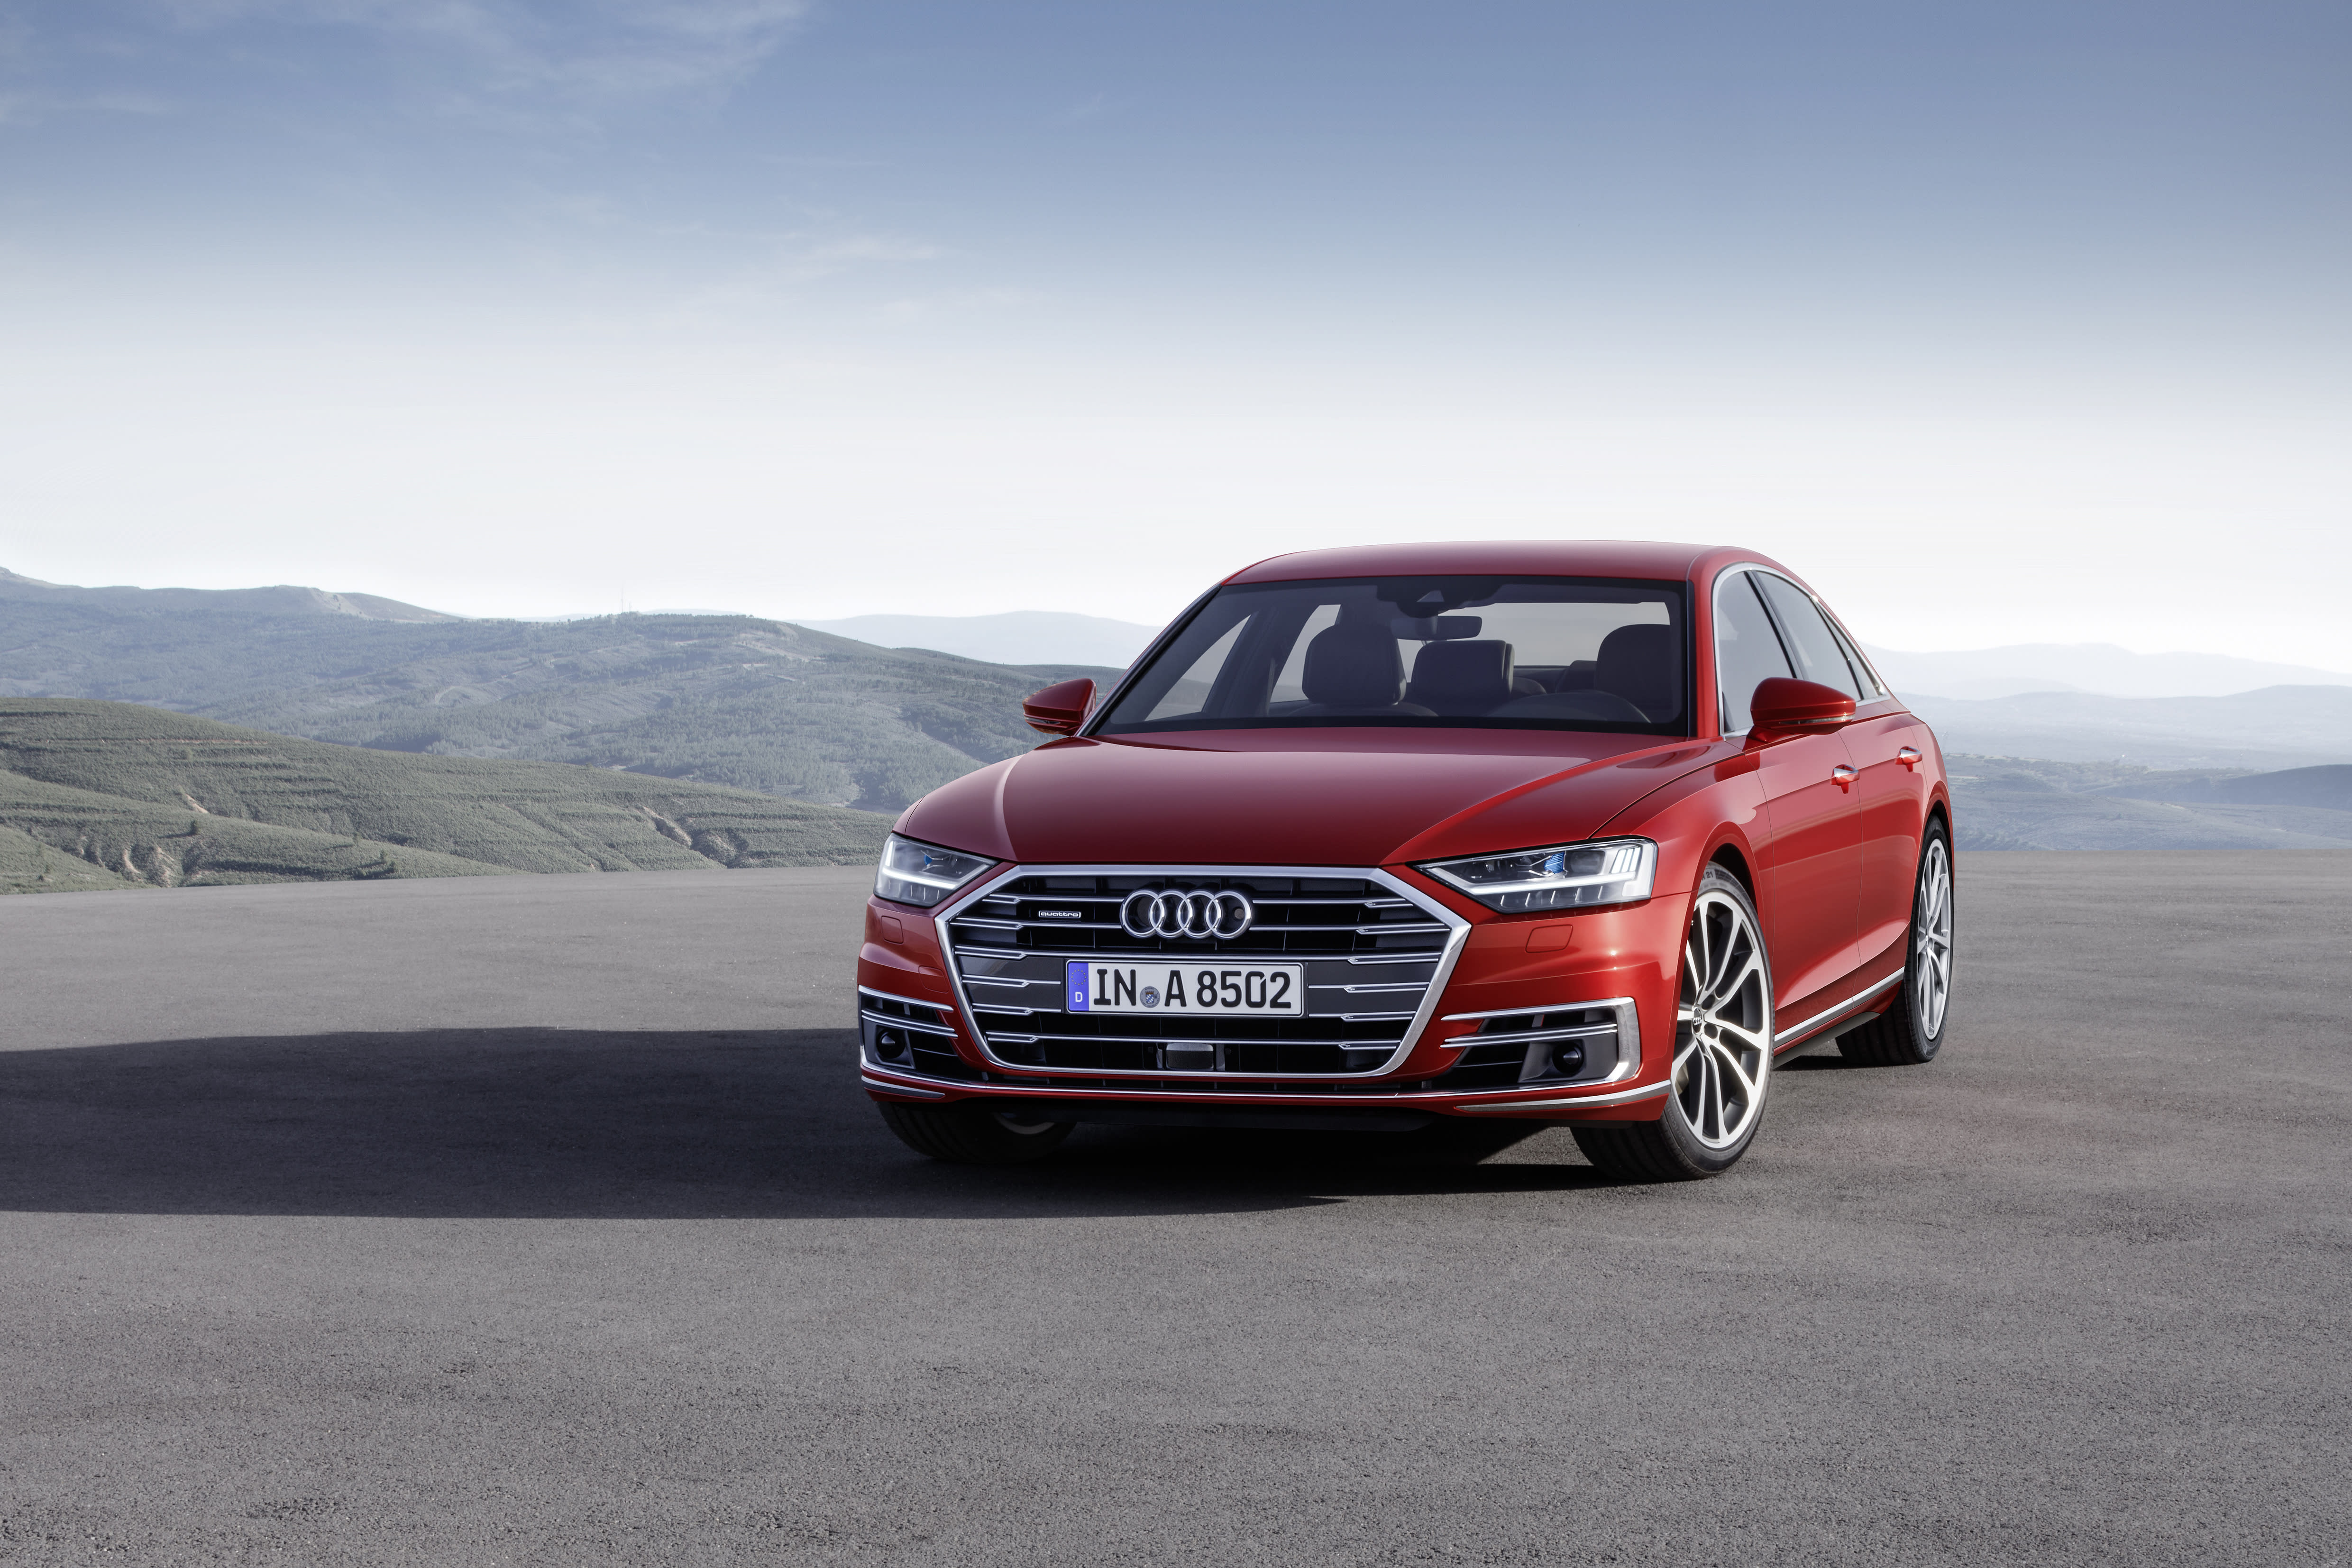 Audi s New Self Driving A8 Is Perfect for Dealing With Traffic Jams